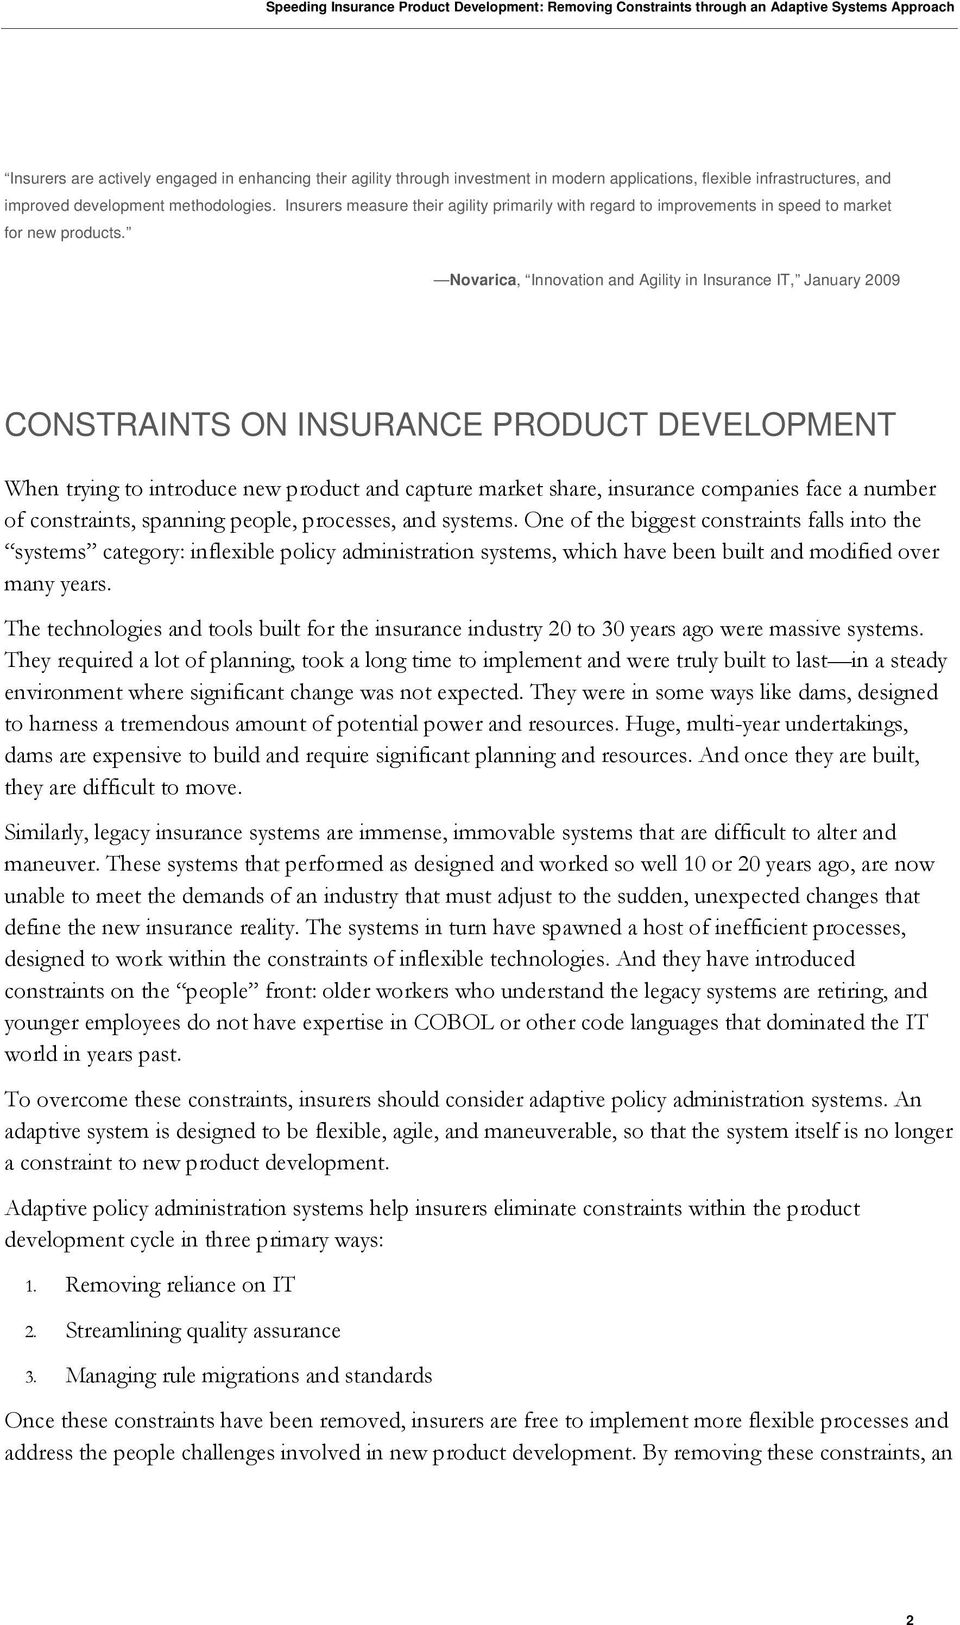 Novarica, Innovation and Agility in Insurance IT, January 2009 CONSTRAINTS ON INSURANCE PRODUCT DEVELOPMENT When trying to introduce new product and capture market share, insurance companies face a